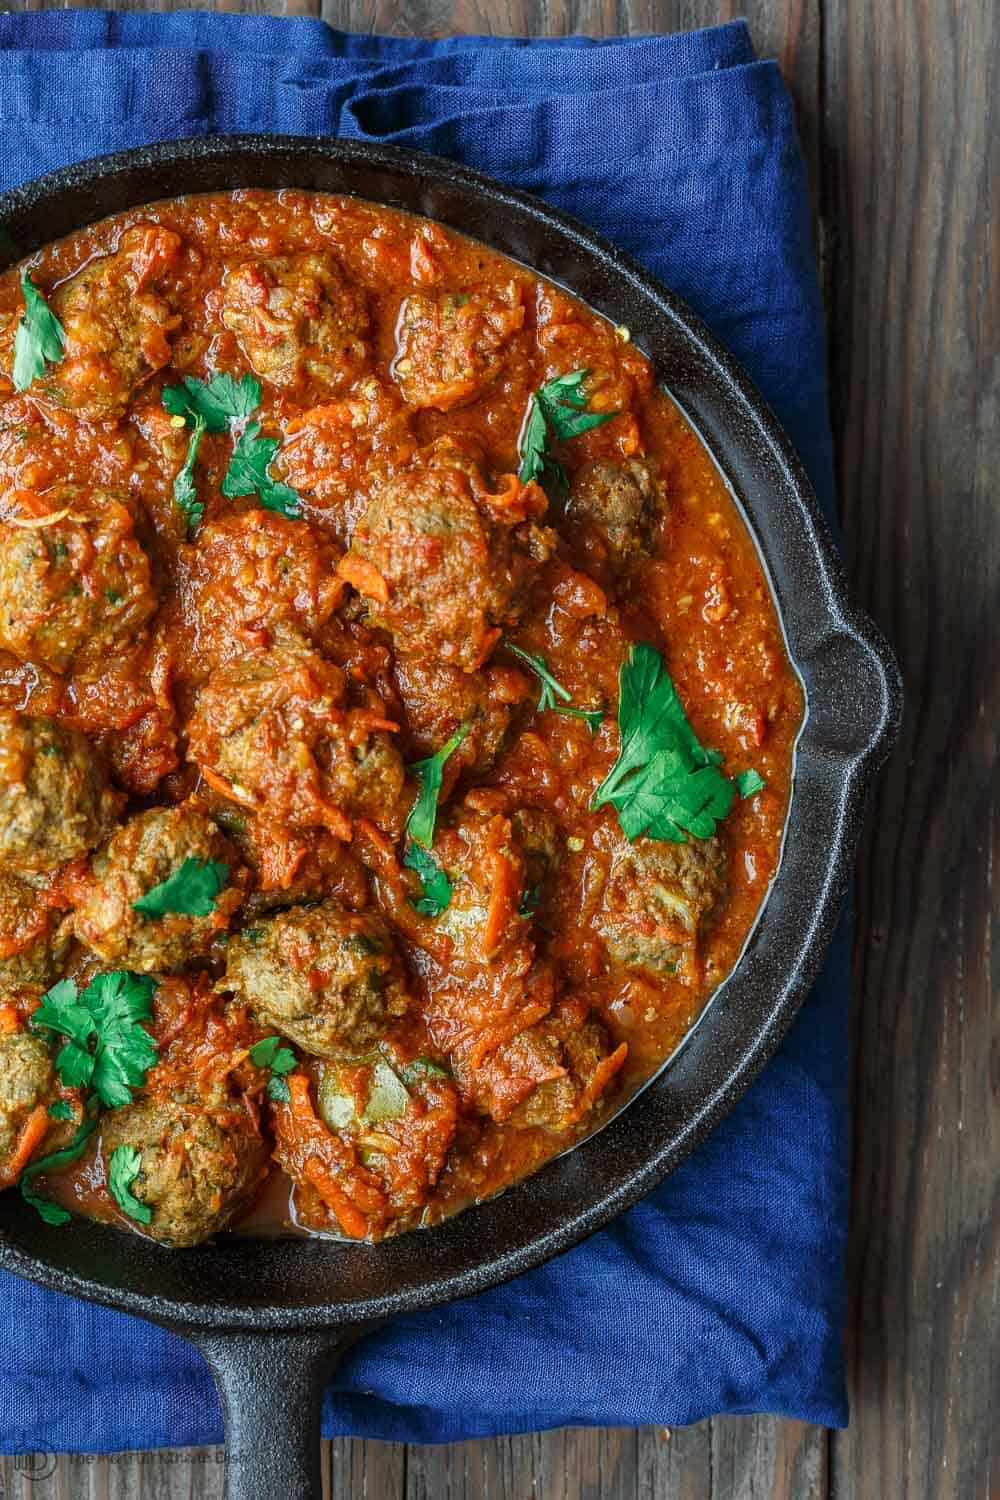 Skillet containing Lebanese-Style Meatballs in Tomato Sauce